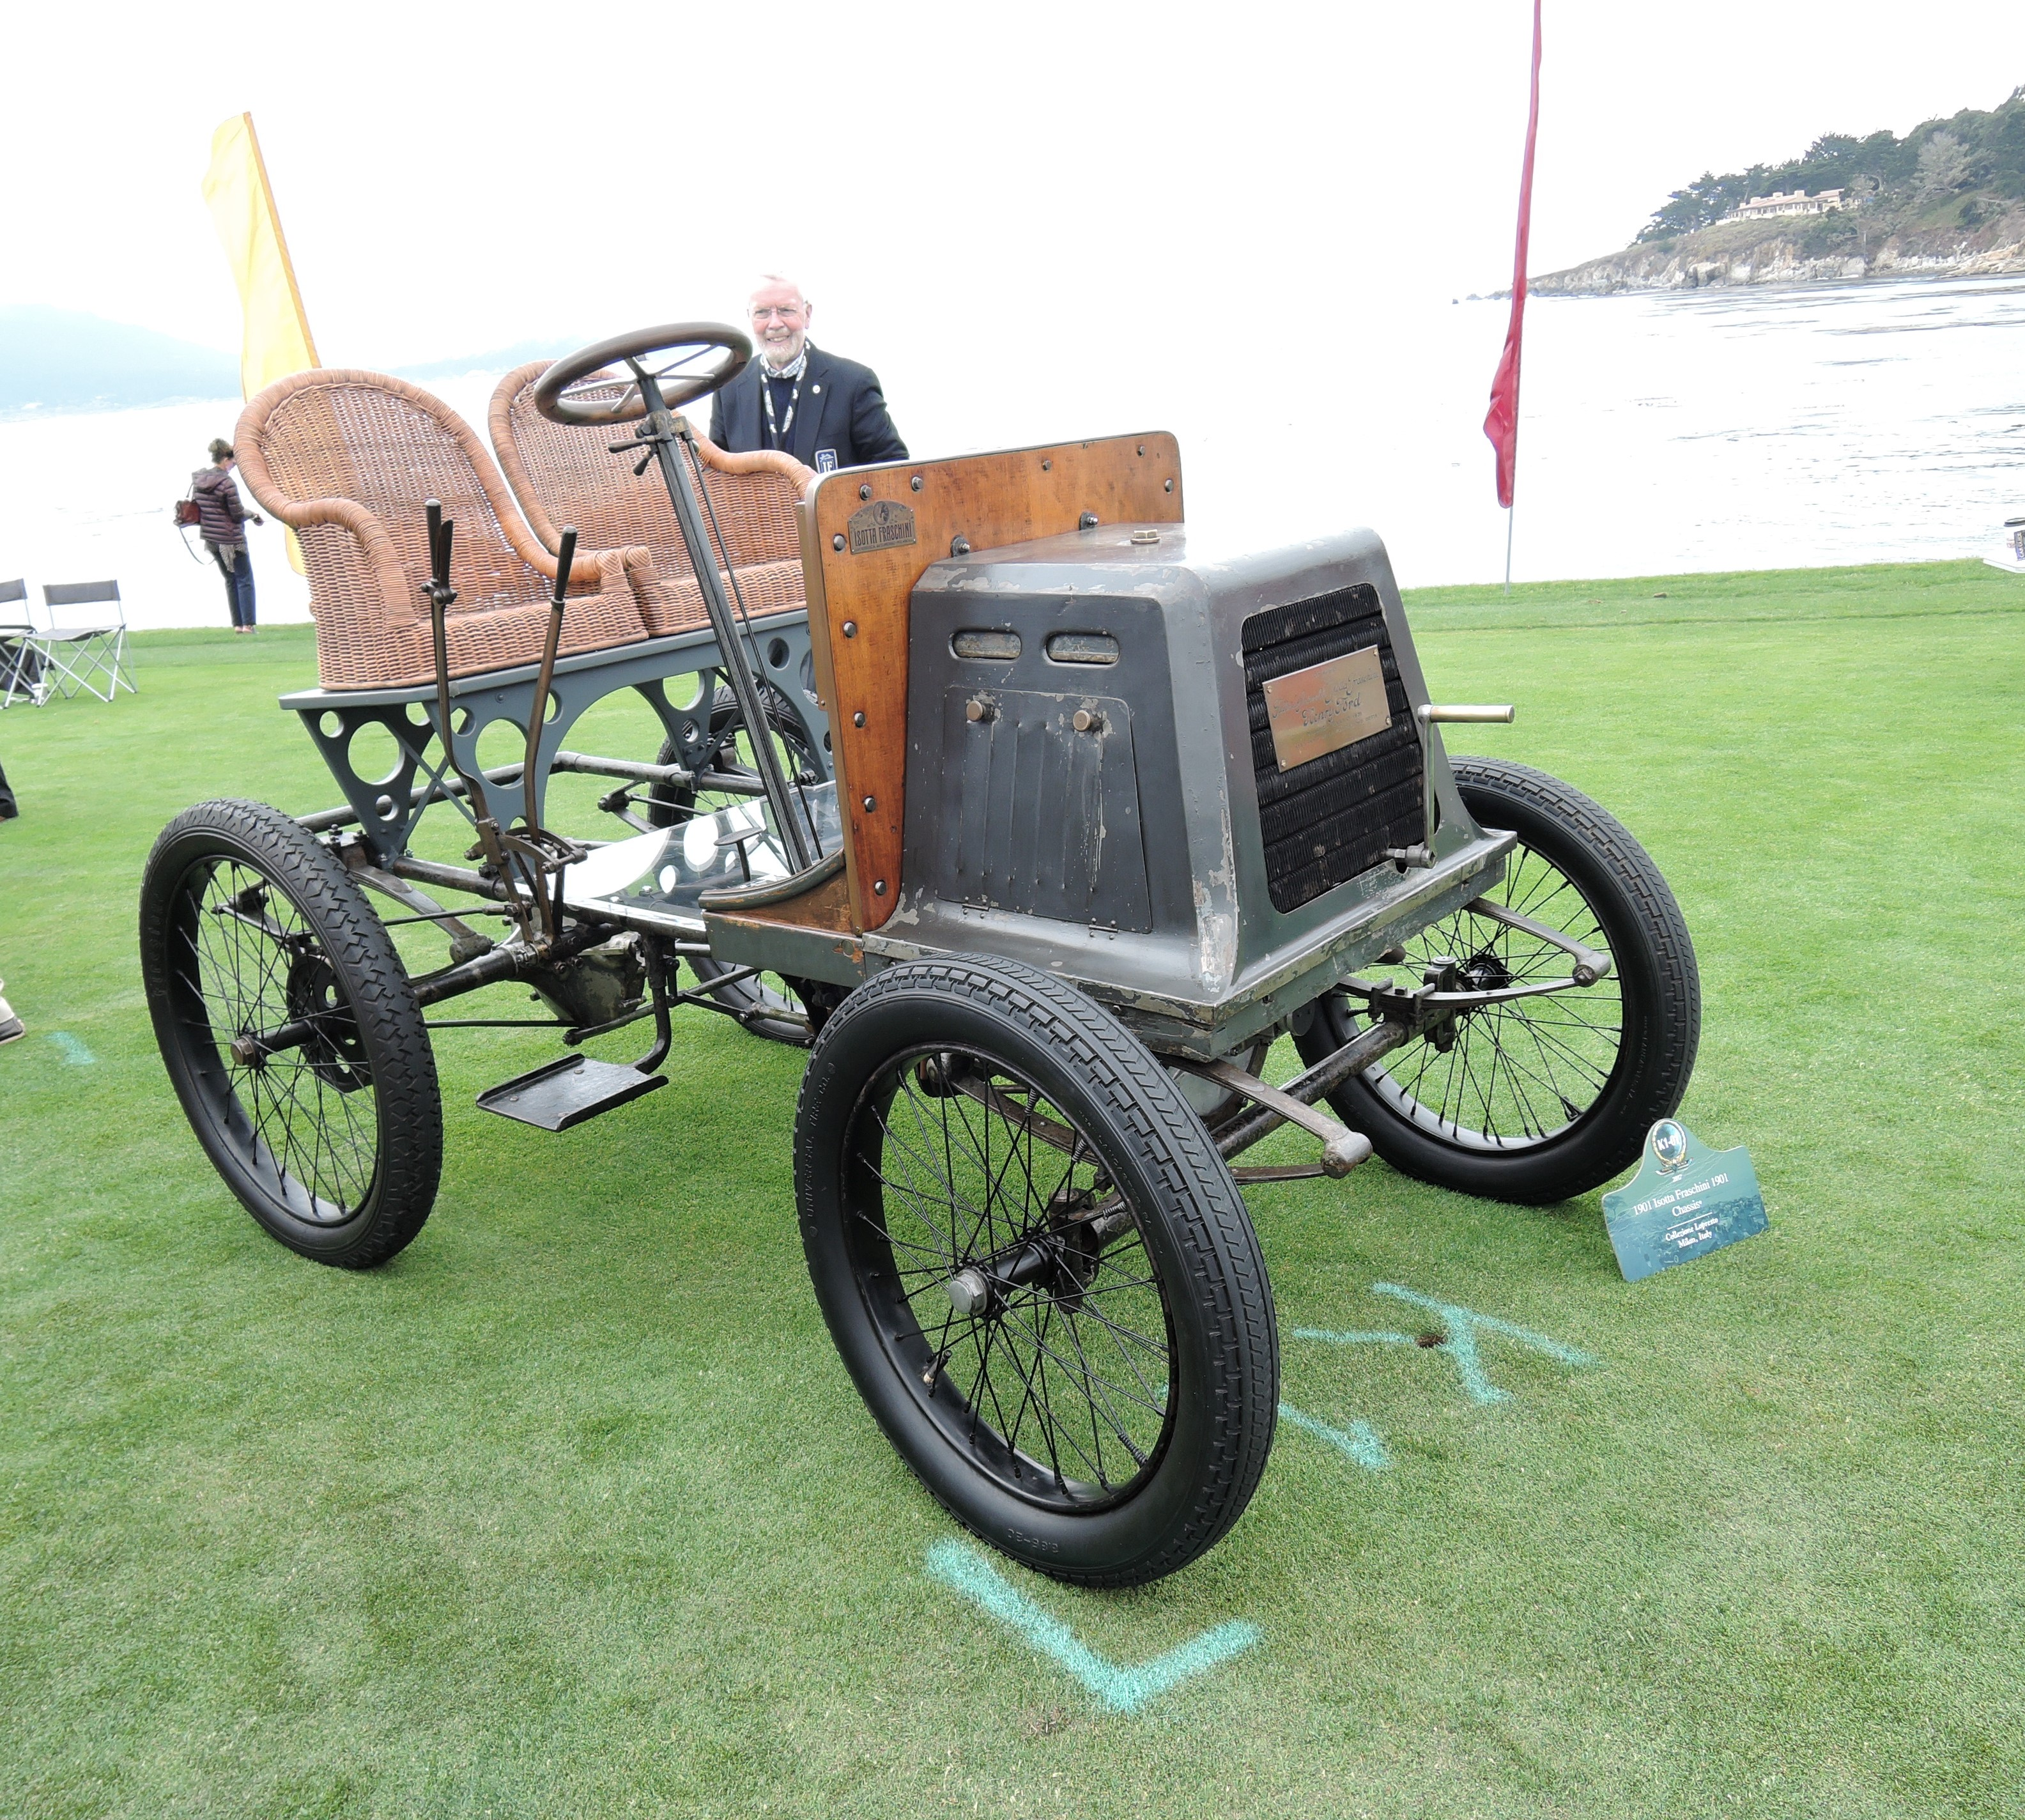 black 1901 Isotta Fraschini Chassis; chassis number 1 - Pebble Beach Concours d'Elegance 2017